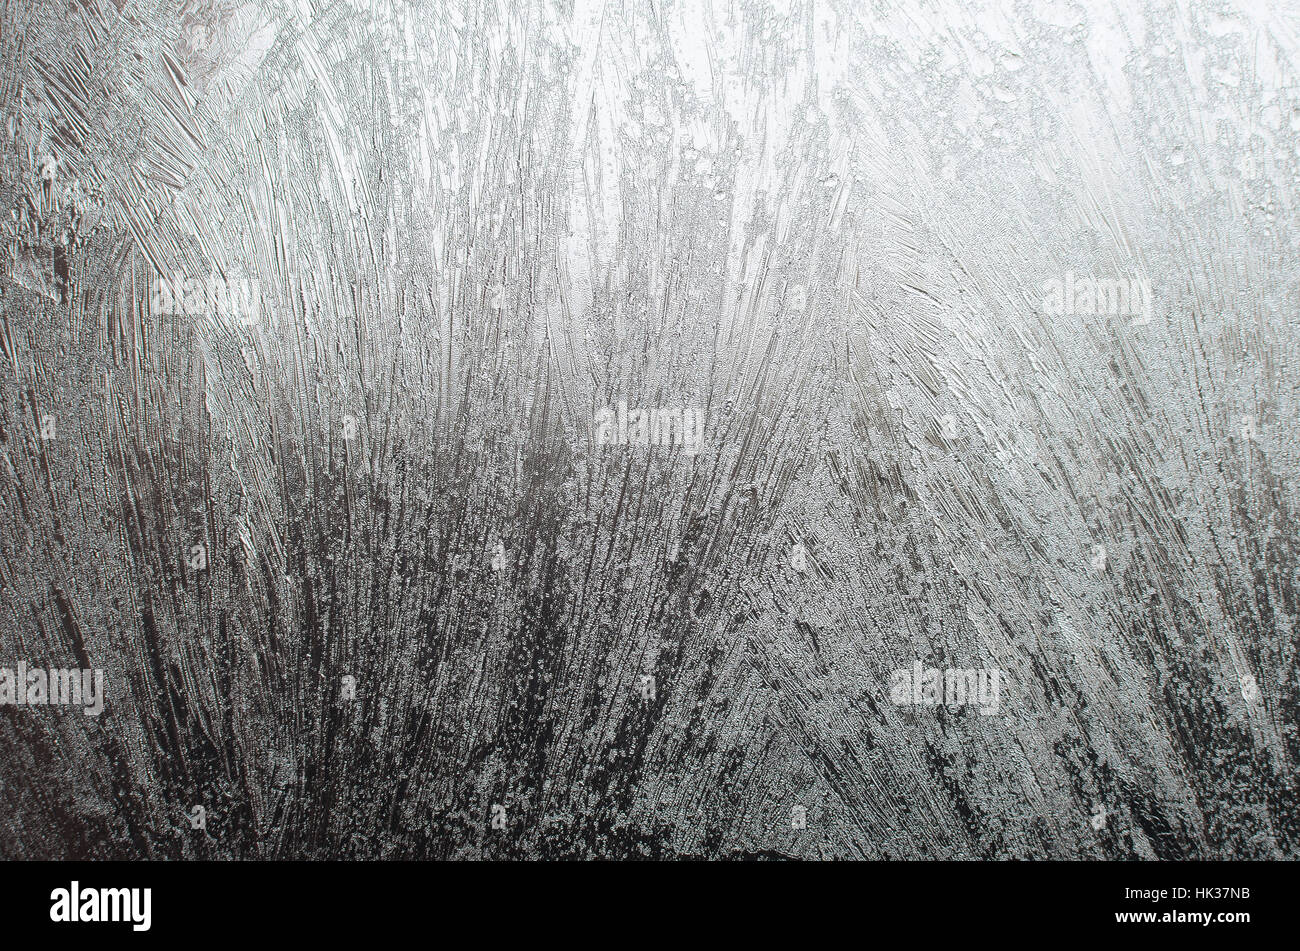 Surface of a window glass with frostwork as a background Stock Photo